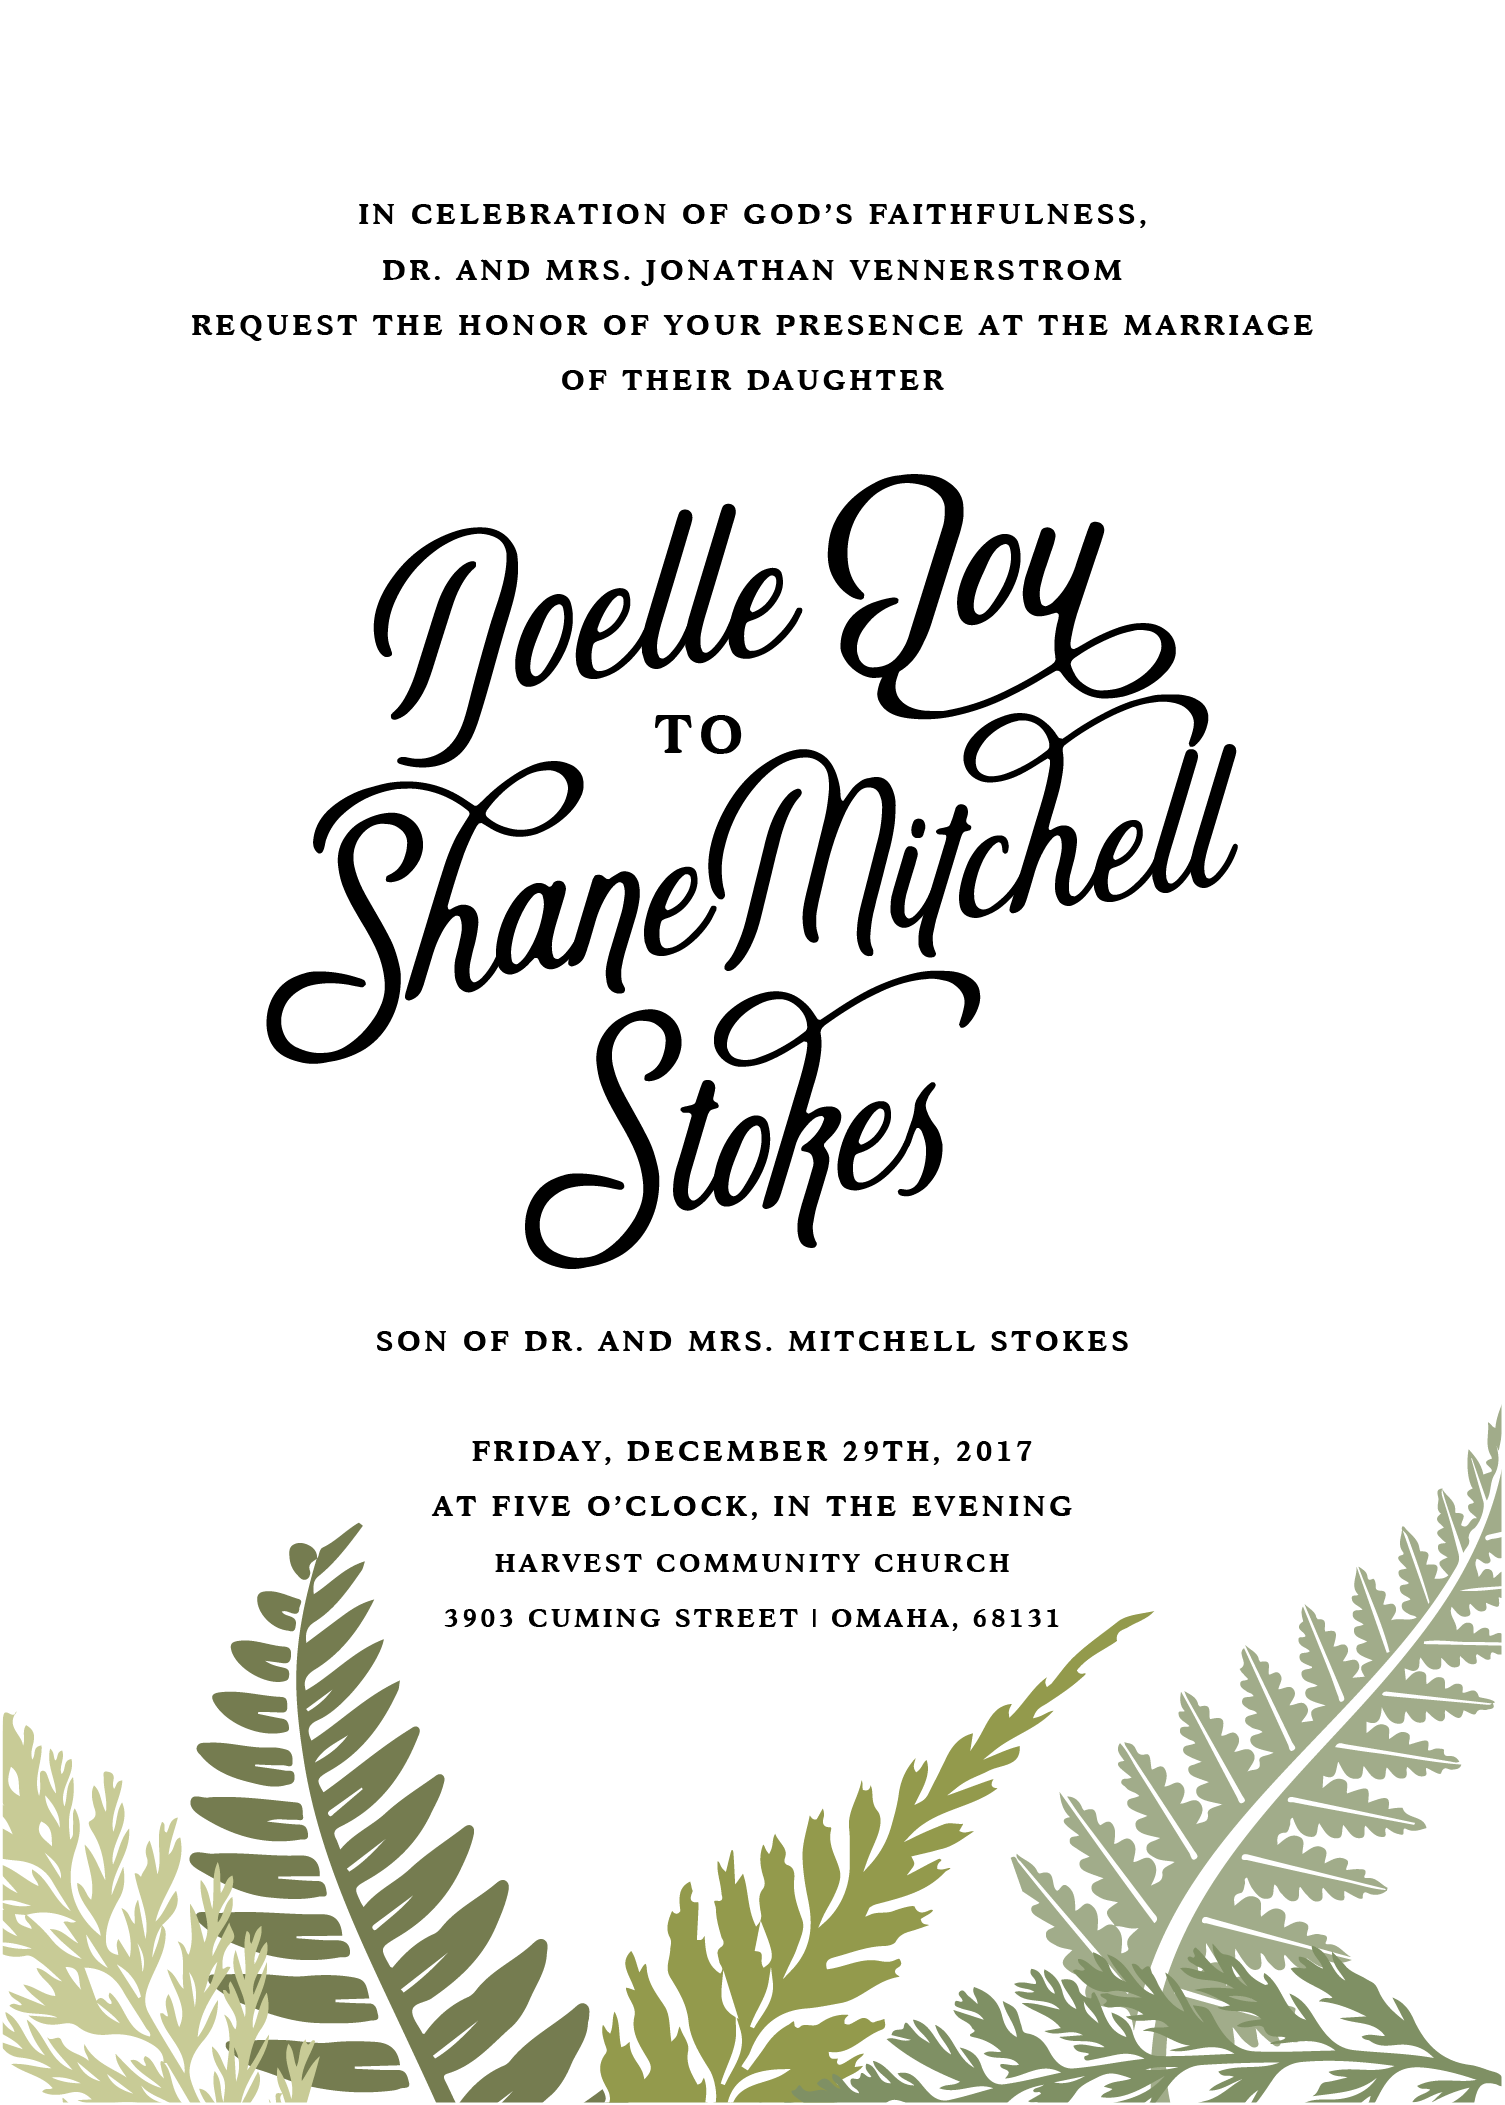 Stokes wedding invitation 2-01.png